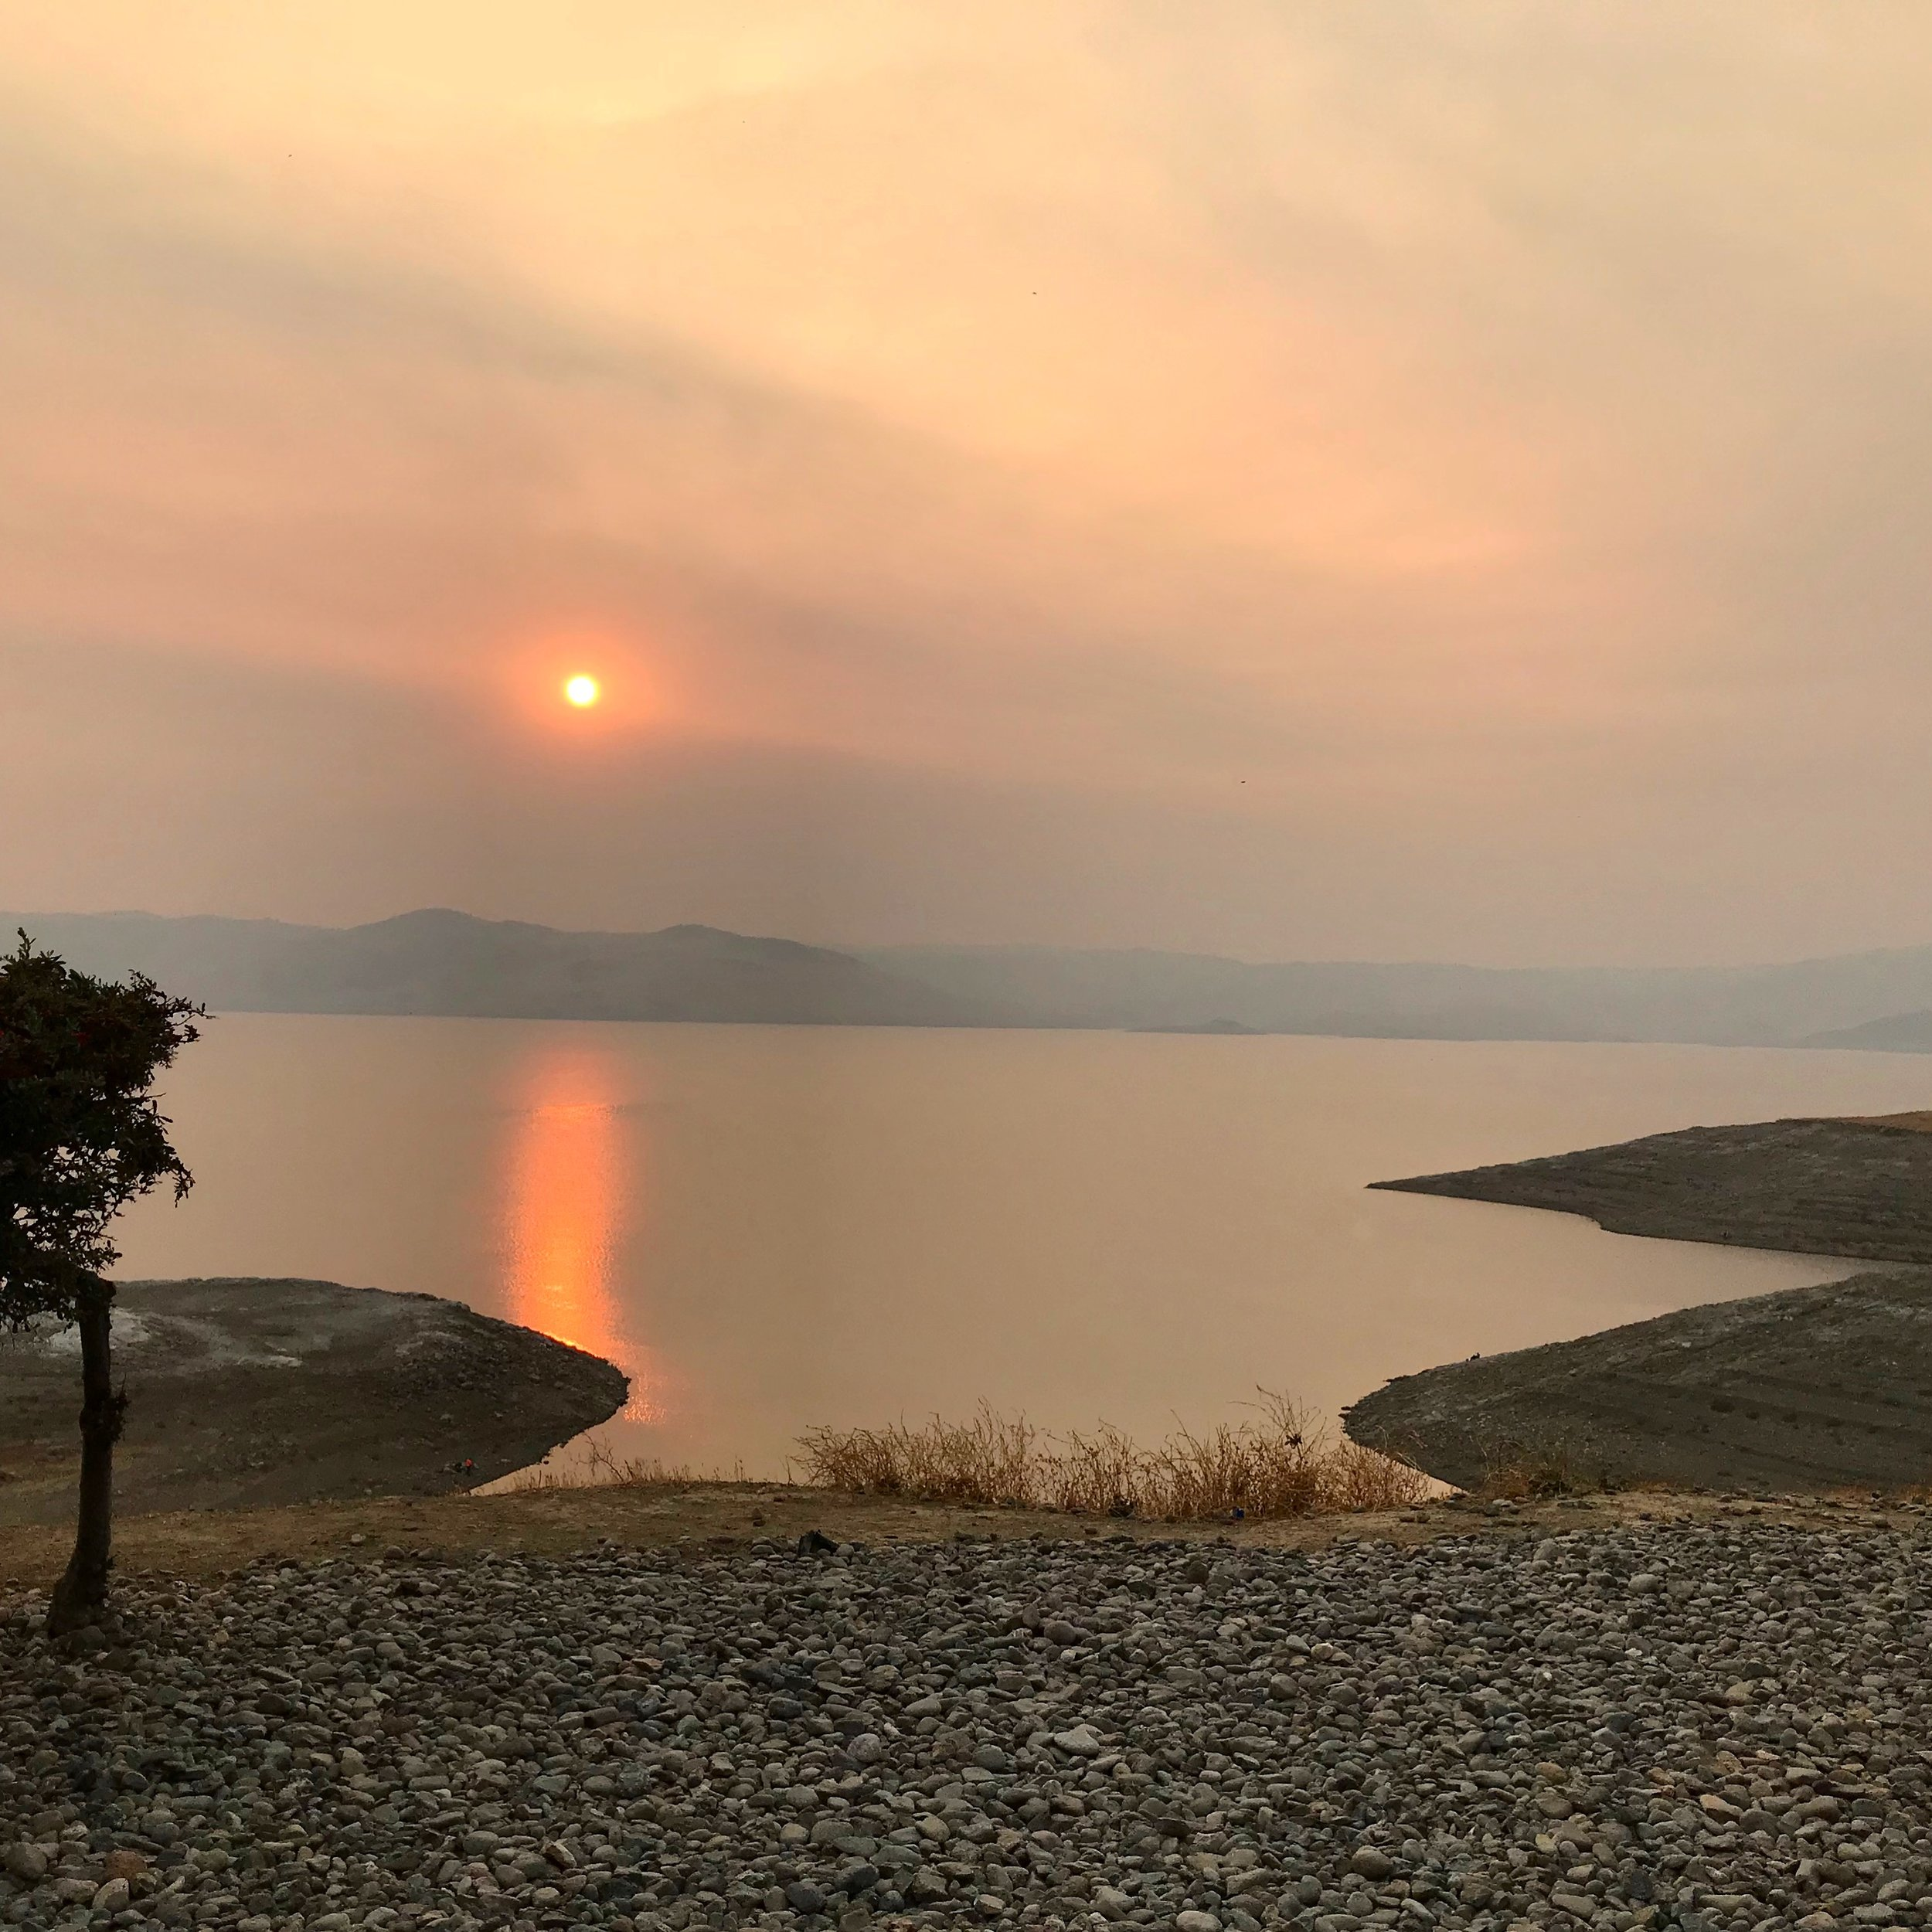 Sunset over the San Luis Reservoir, the fifth largest reservoir in the state.